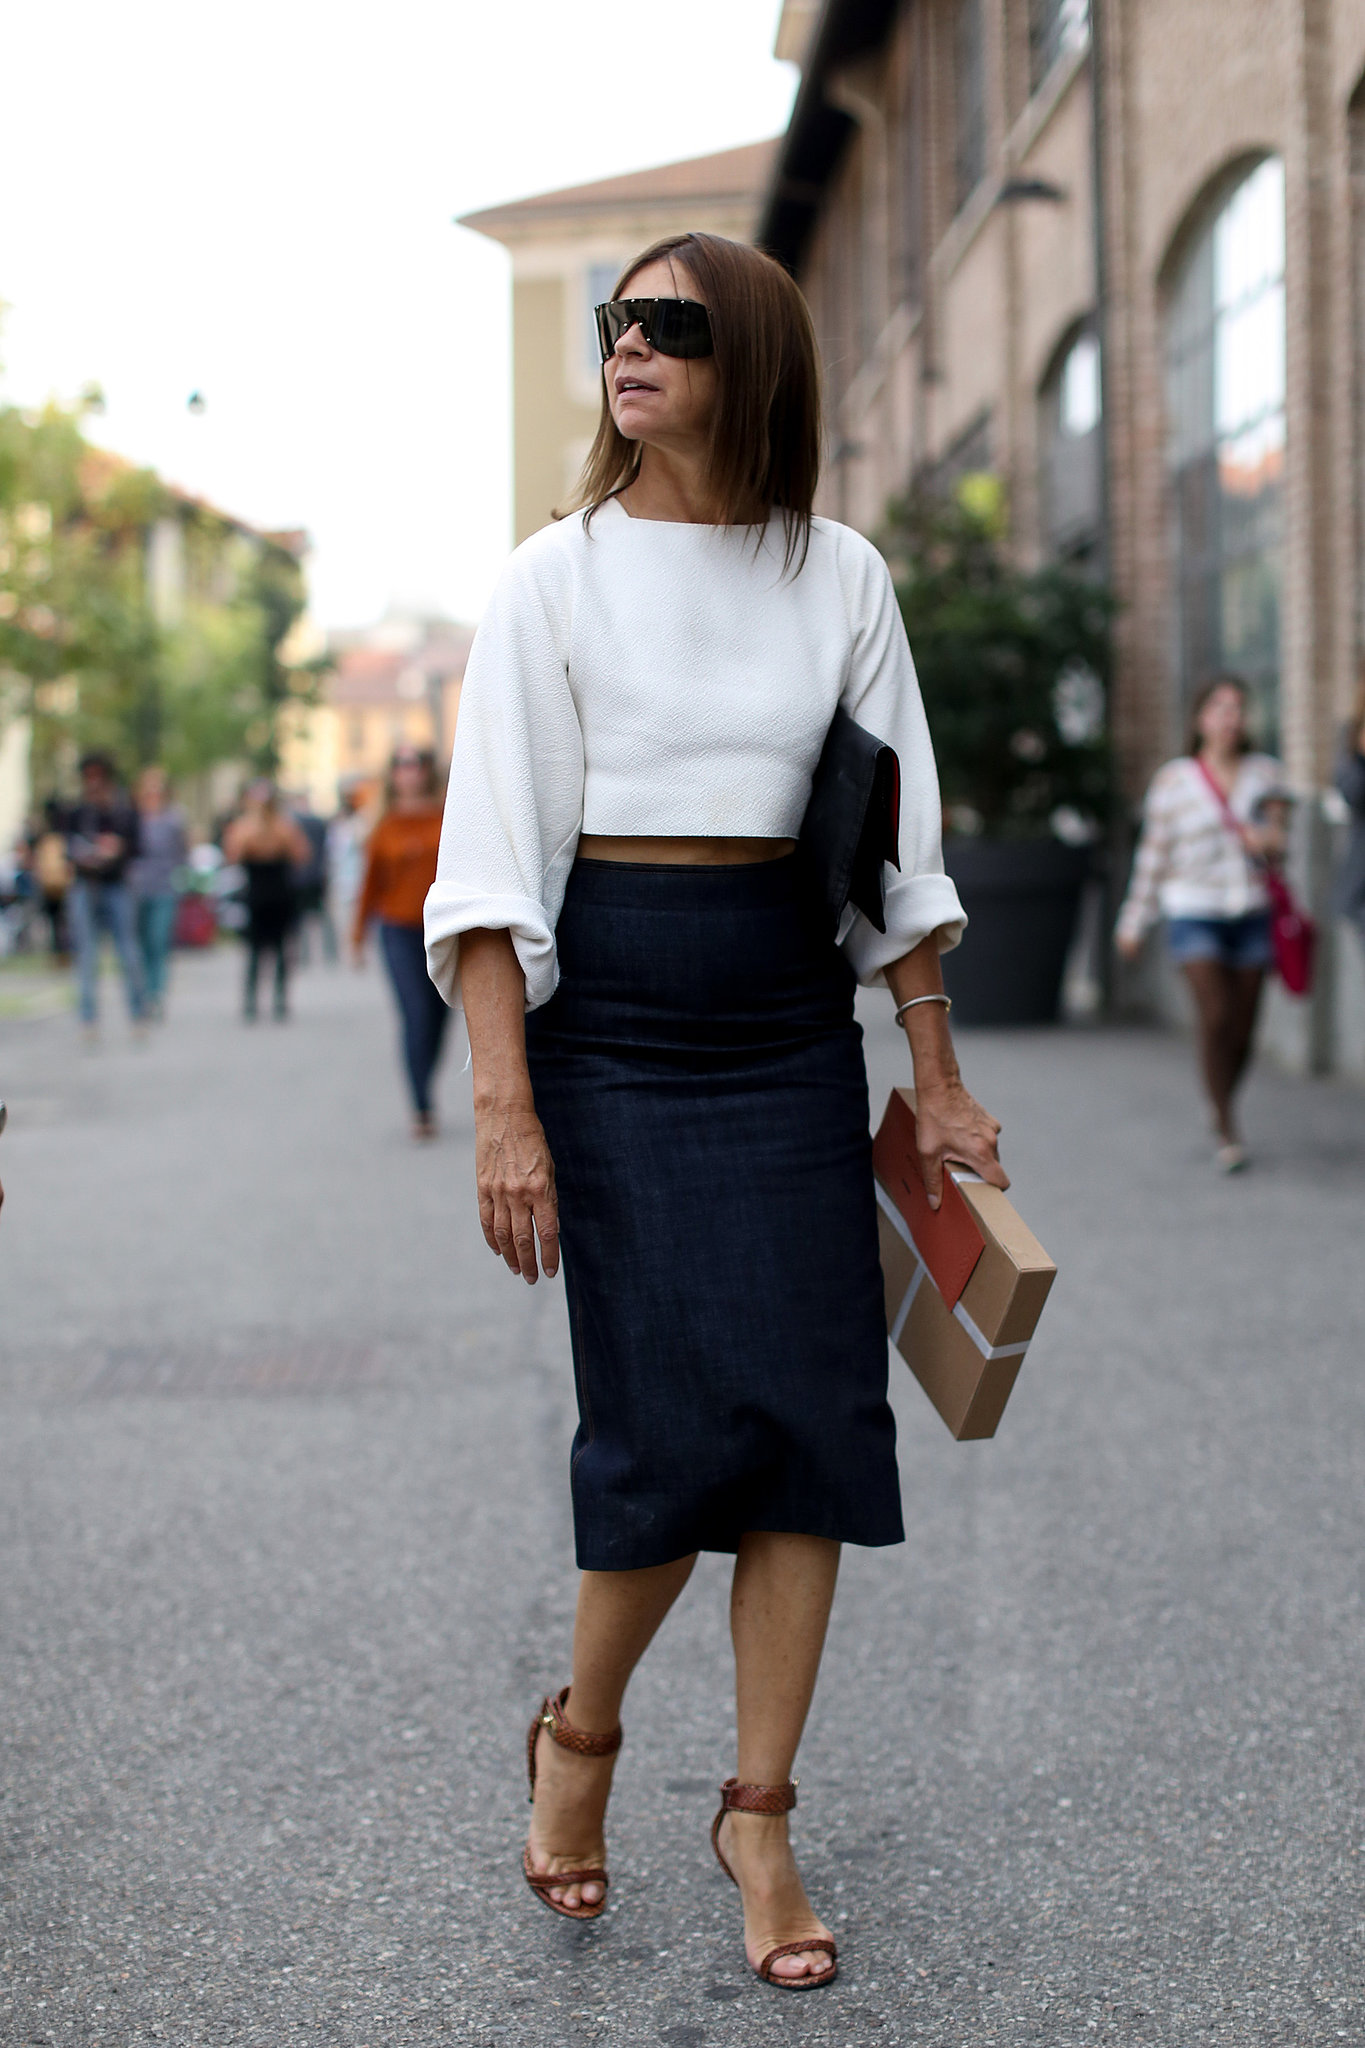 carine roitfeld stayed slick in a pencil skirt and crop